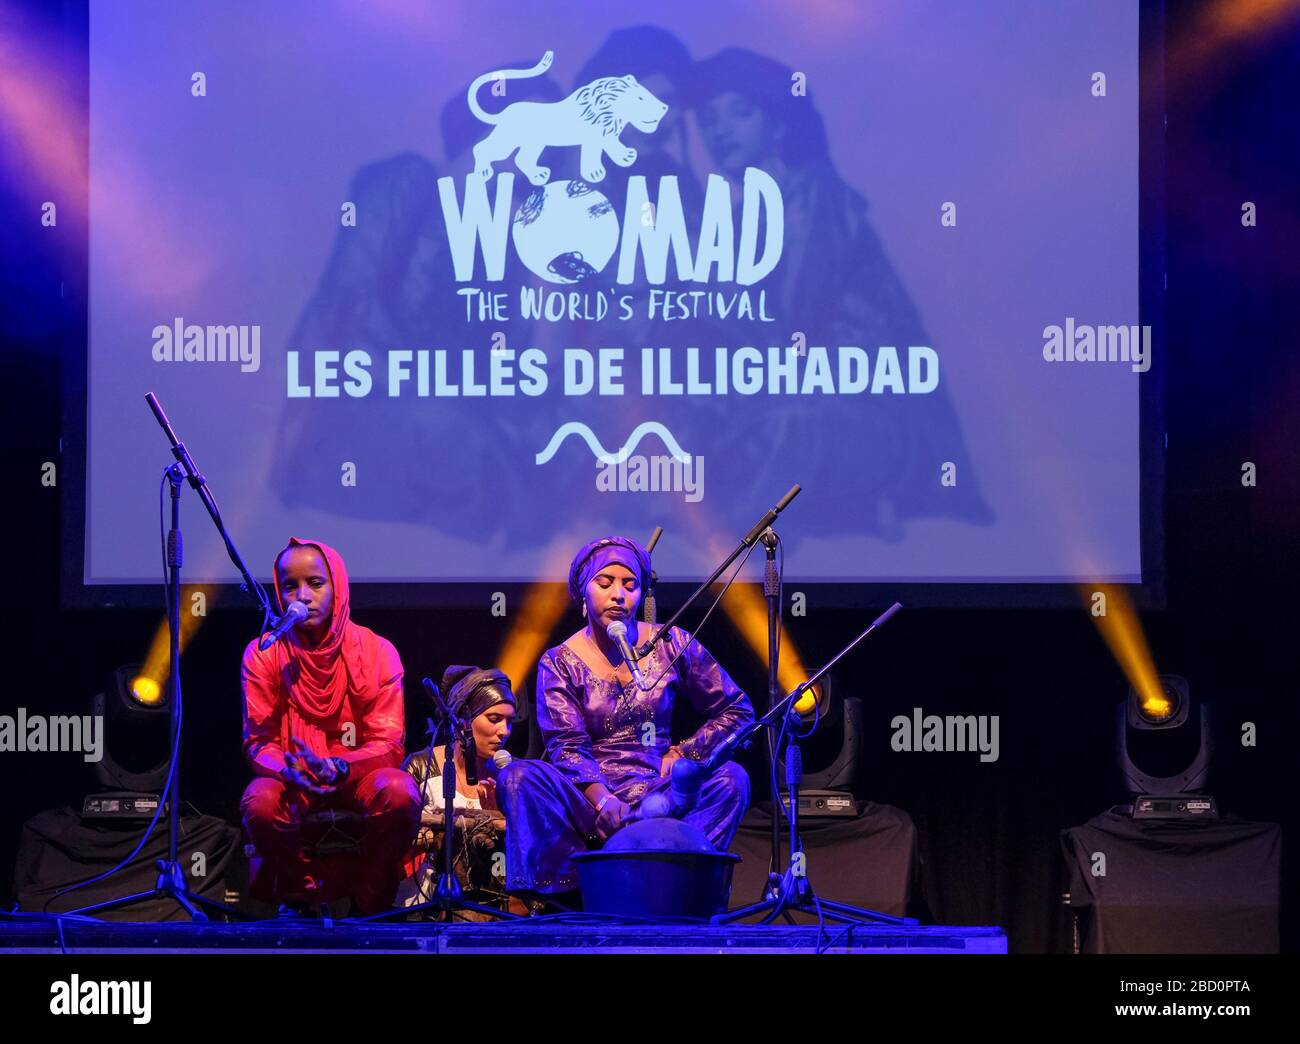 Les Filles de Illighadad performing at the WOMAD Festival ...